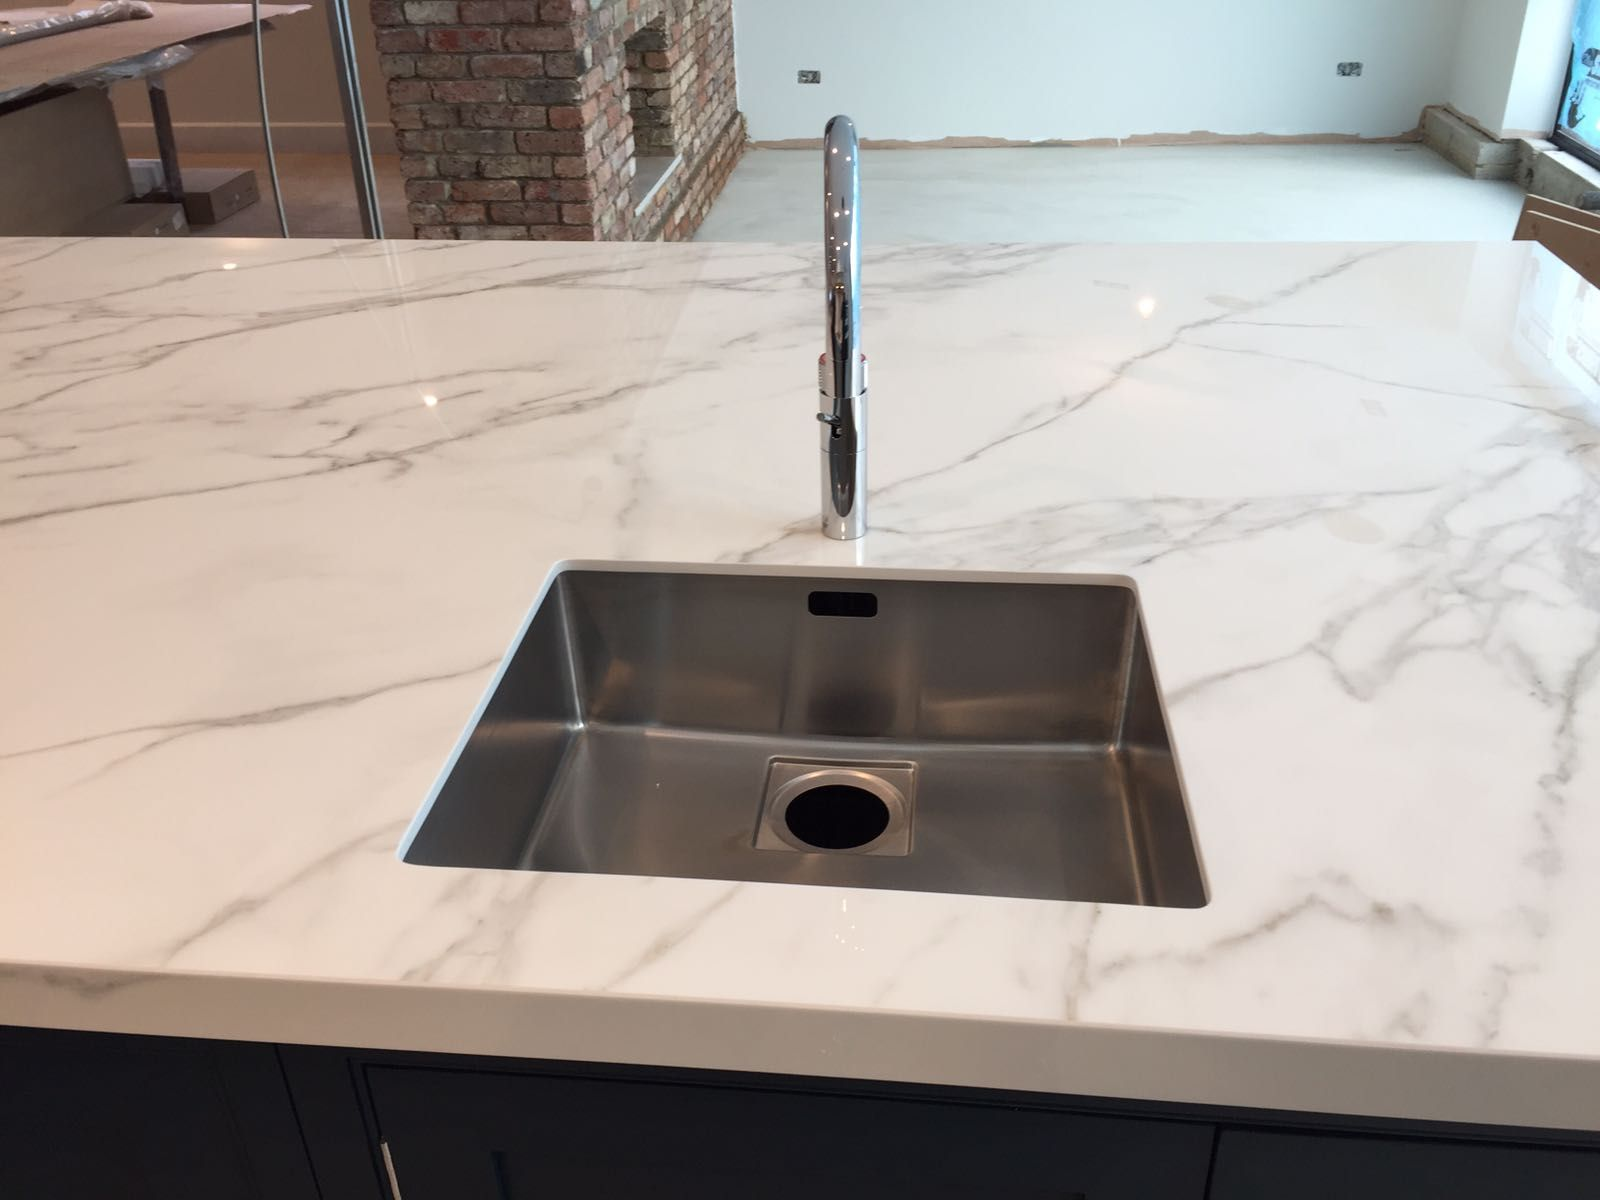 The Marble Group think that Neolith is one of the most aesthetically on kitchen sinks, kitchen taps, kitchen design, kitchen lighting, kitchen appliances, kitchen shelves, kitchen accessories, kitchen computer workstation, kitchen backsplash, kitchen splashbacks, kitchen units, kitchen islands, kitchen walls, kitchen countertops, kitchen utility worker, kitchen doors, kitchen cabinets, kitchen cupboards, kitchen flooring, kitchen tiles,